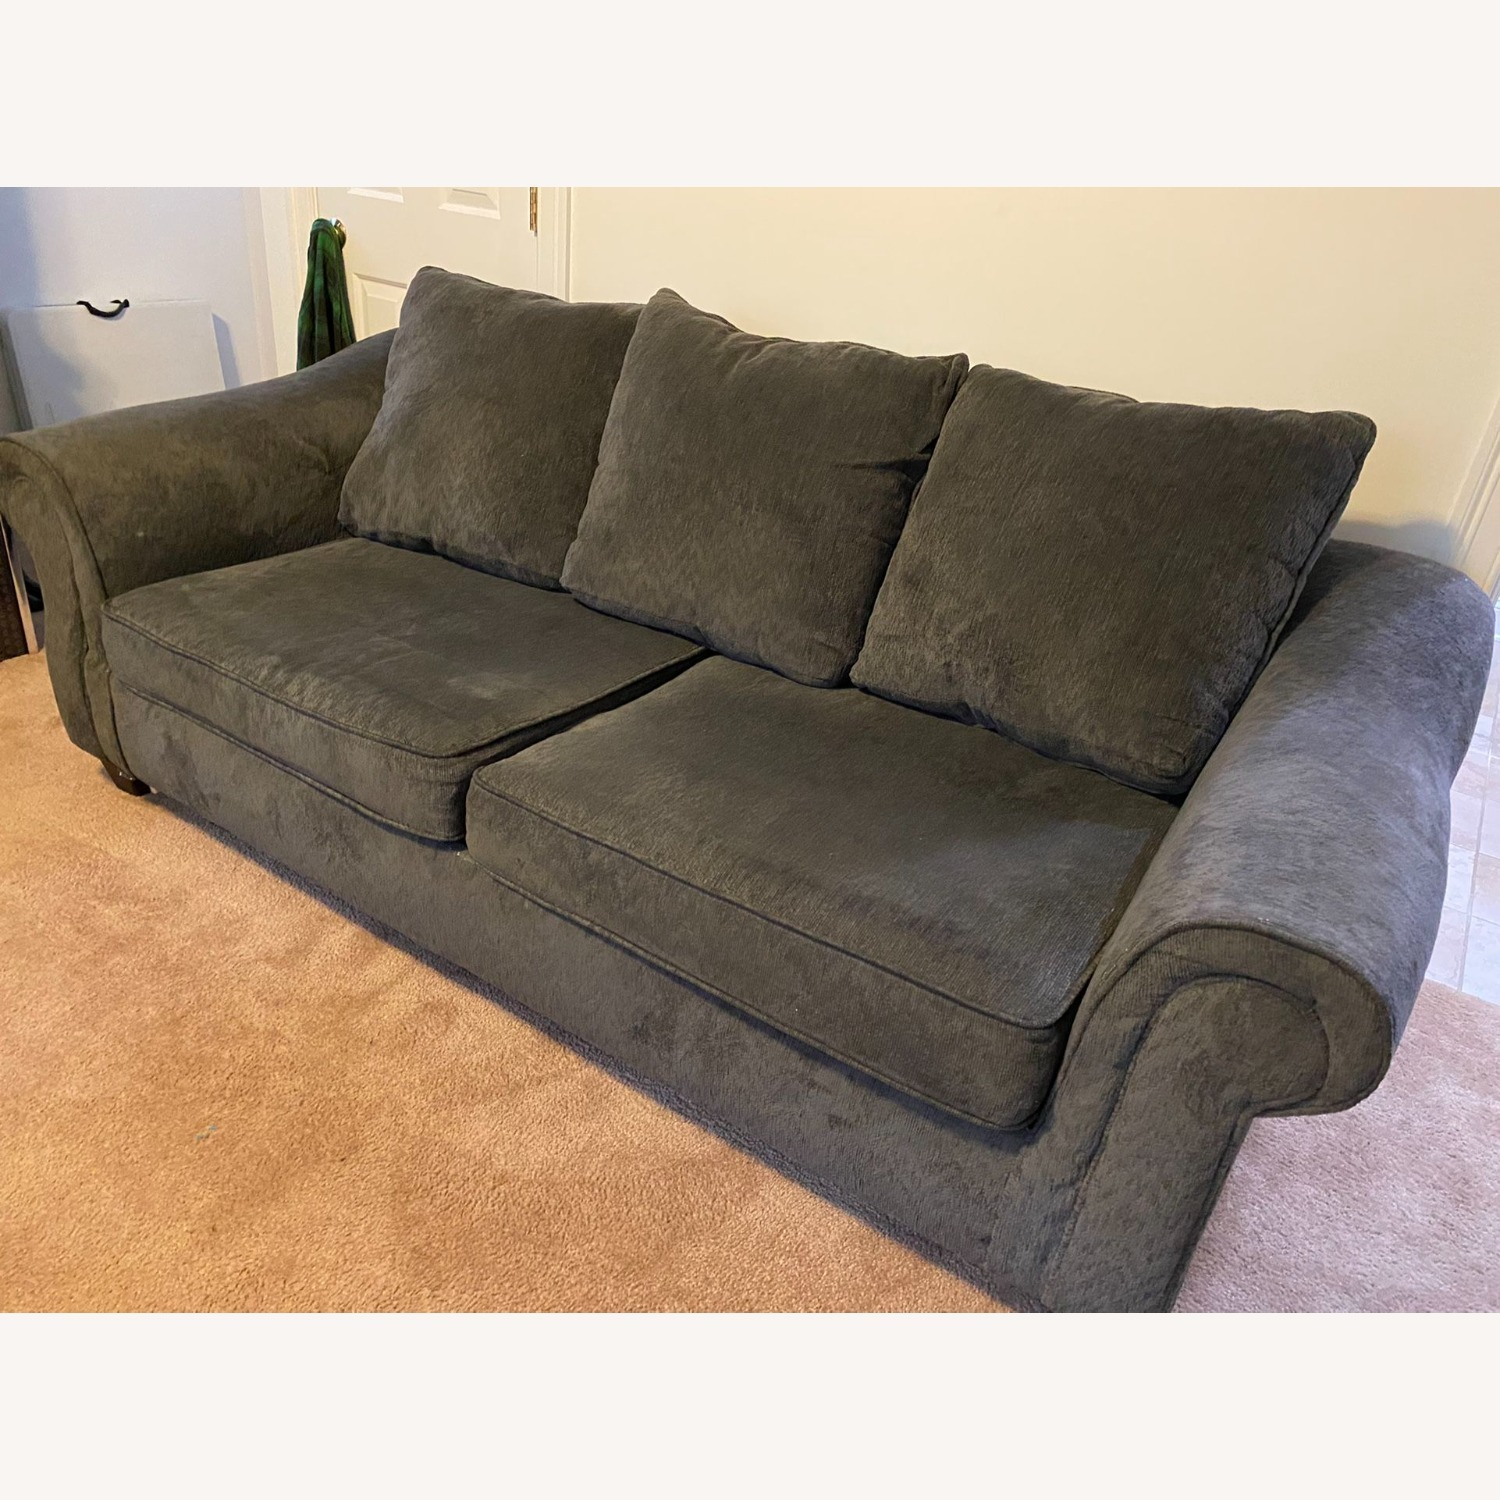 Rooms To Go Sofa Bed - image-1